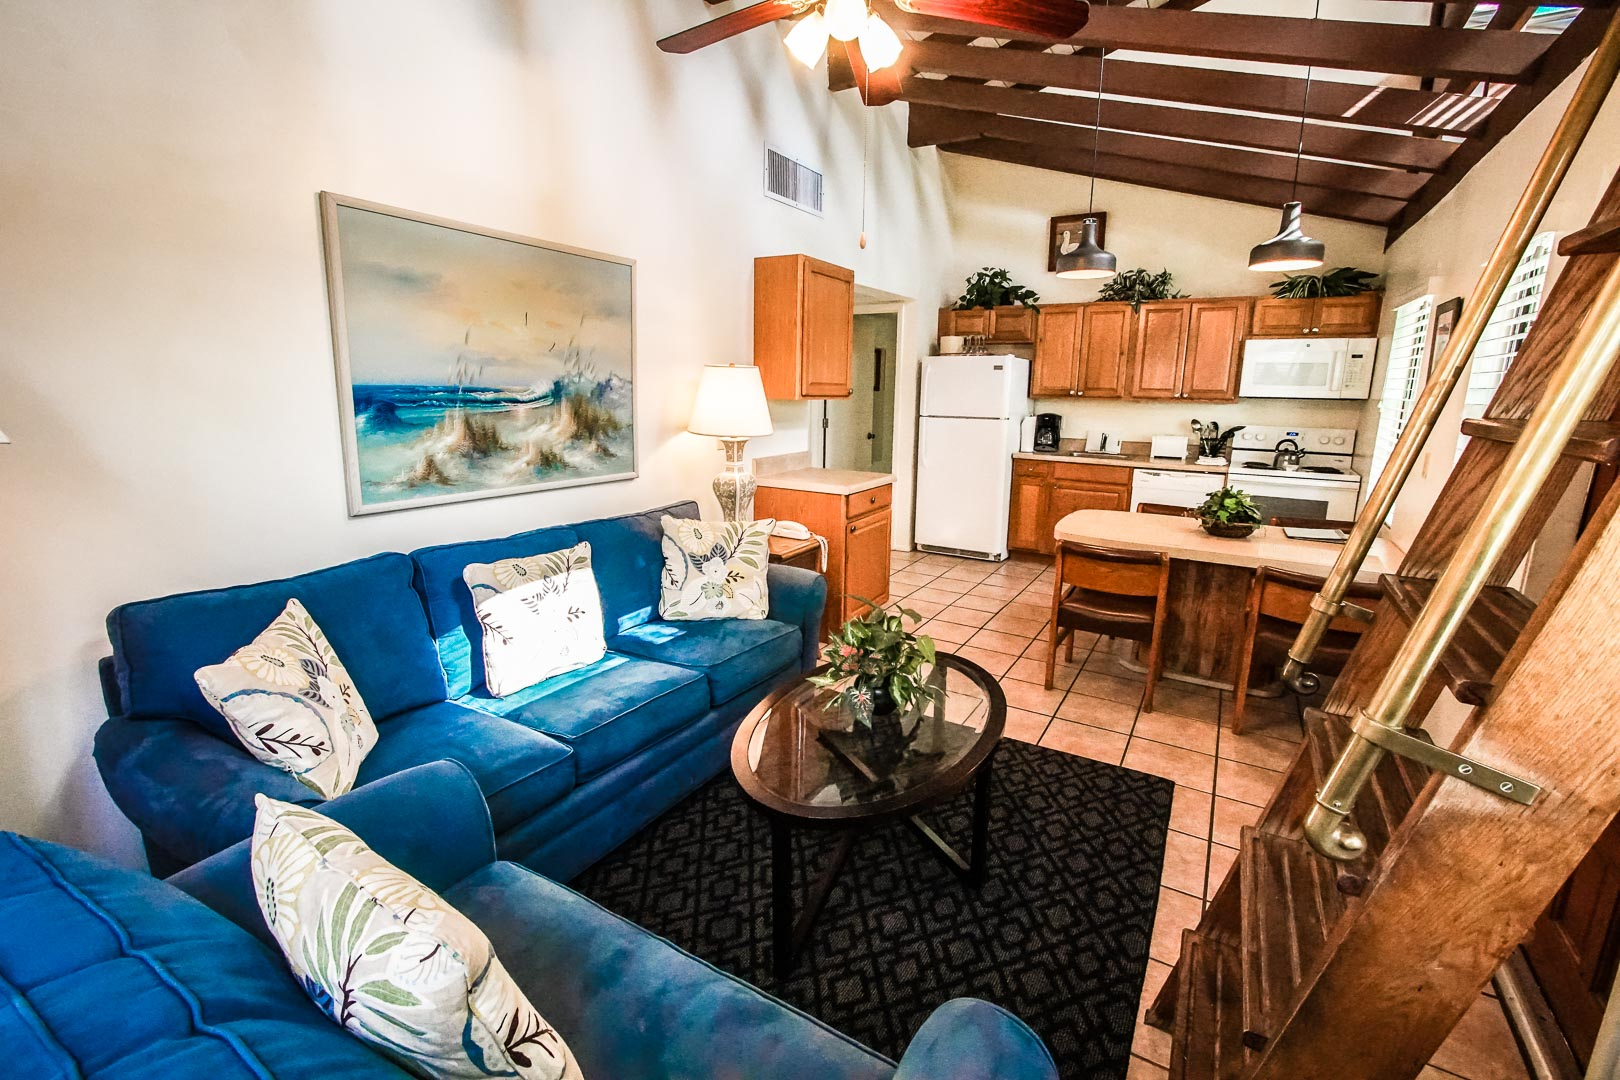 A spacious 2 bedroom loft at VRI's Sand Dune Shores in Florida.